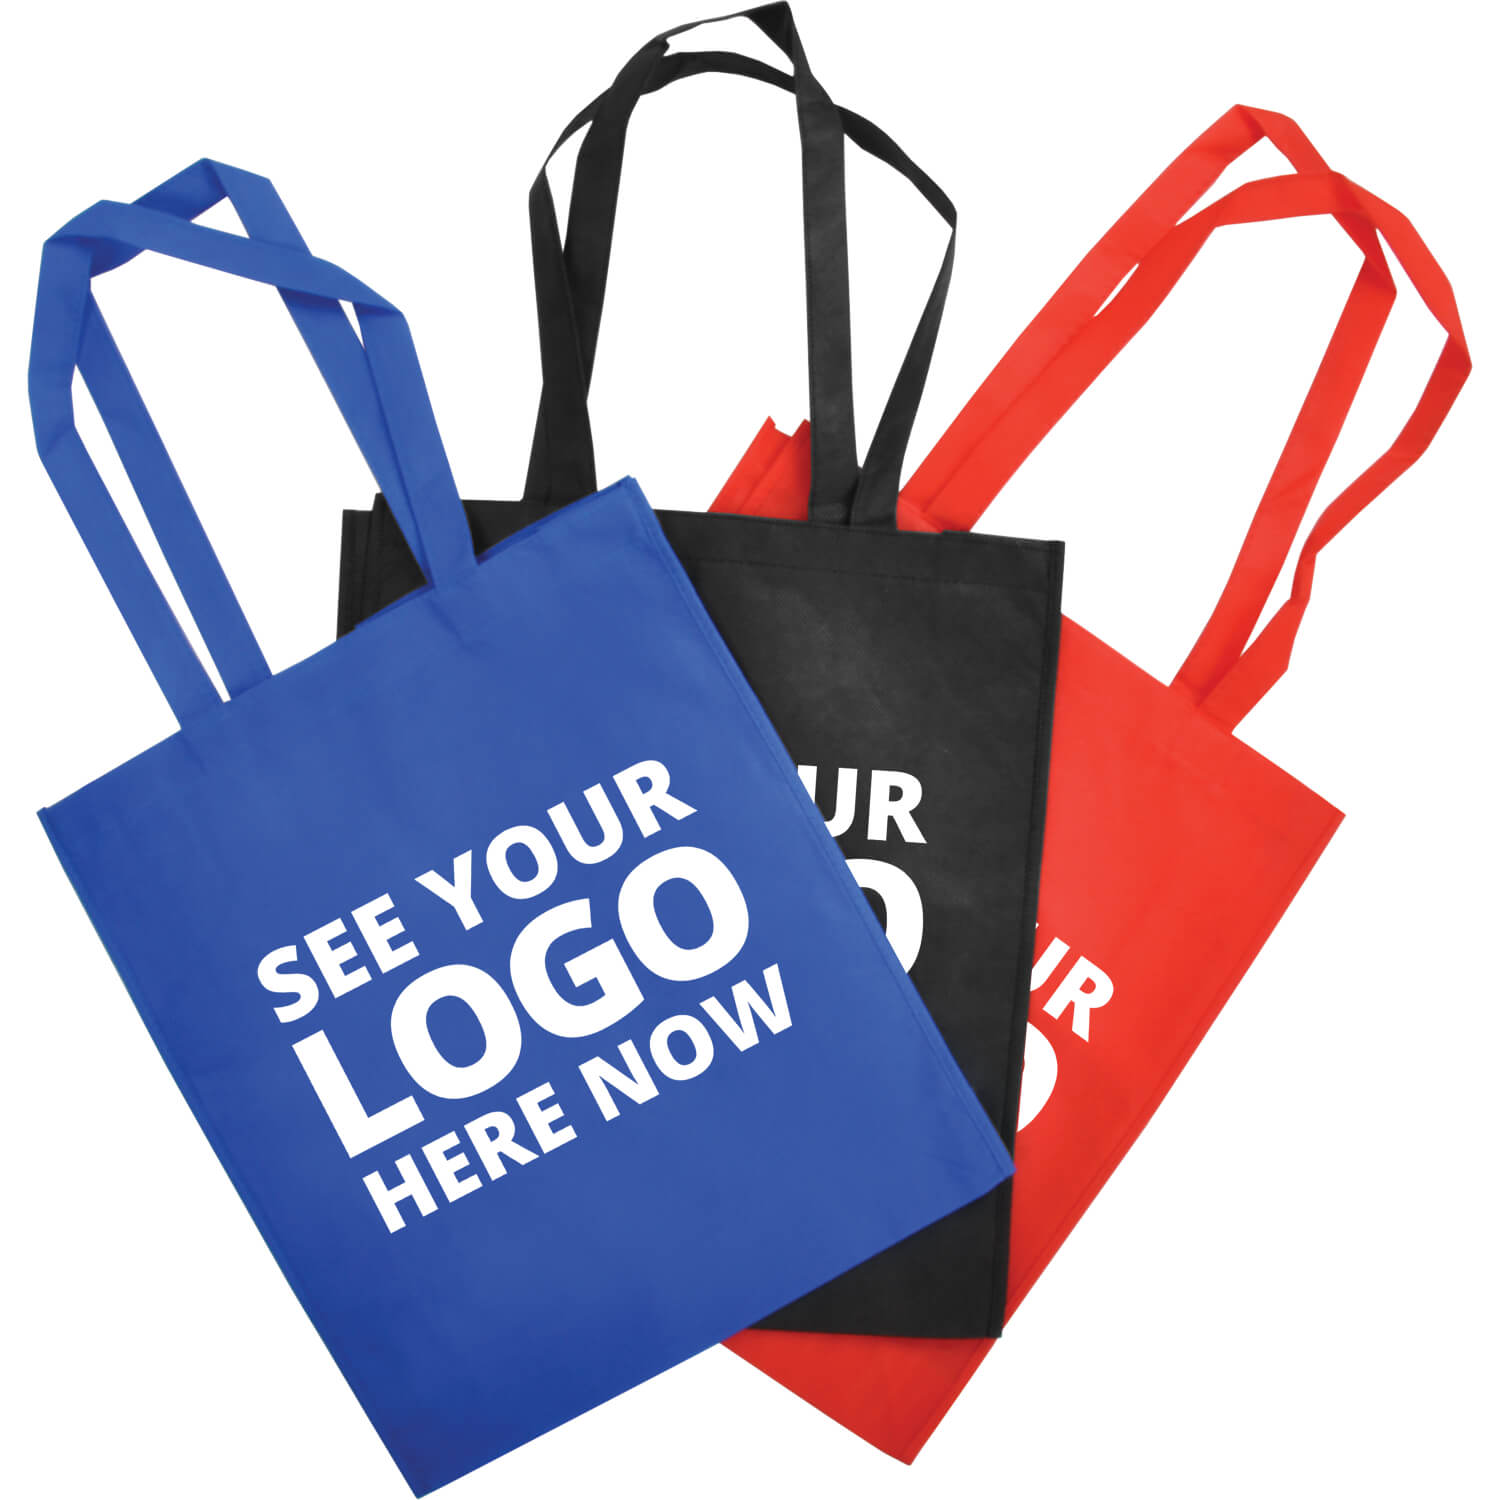 Value Non-Woven Gusset Show Bag